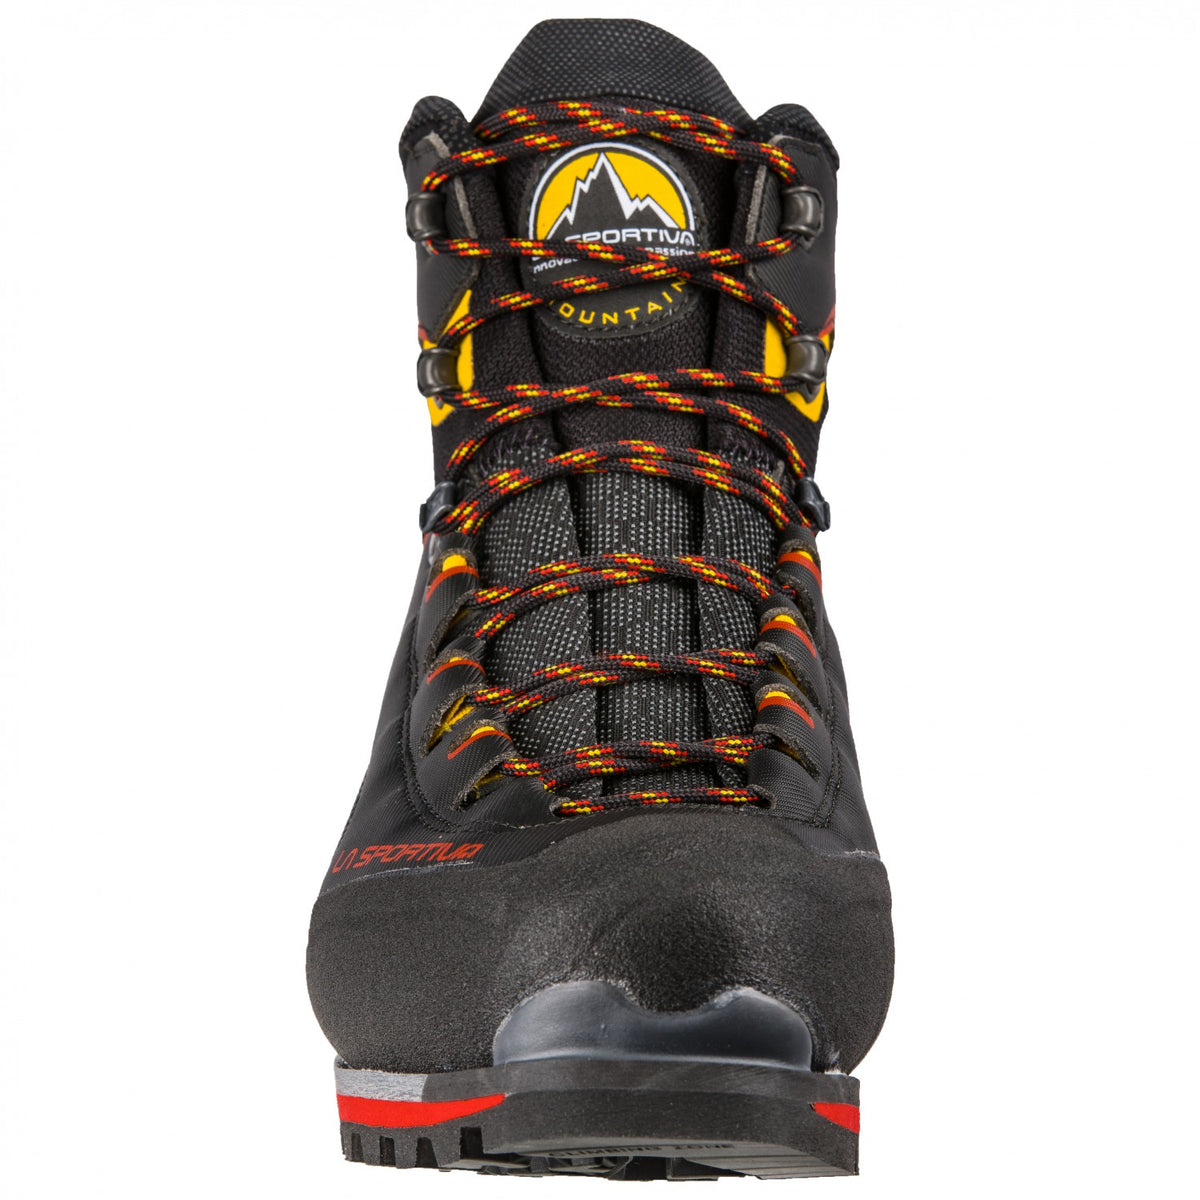 La Sportiva Trango Tower Extreme GTX mountaineering boot, view from the front showing the laces